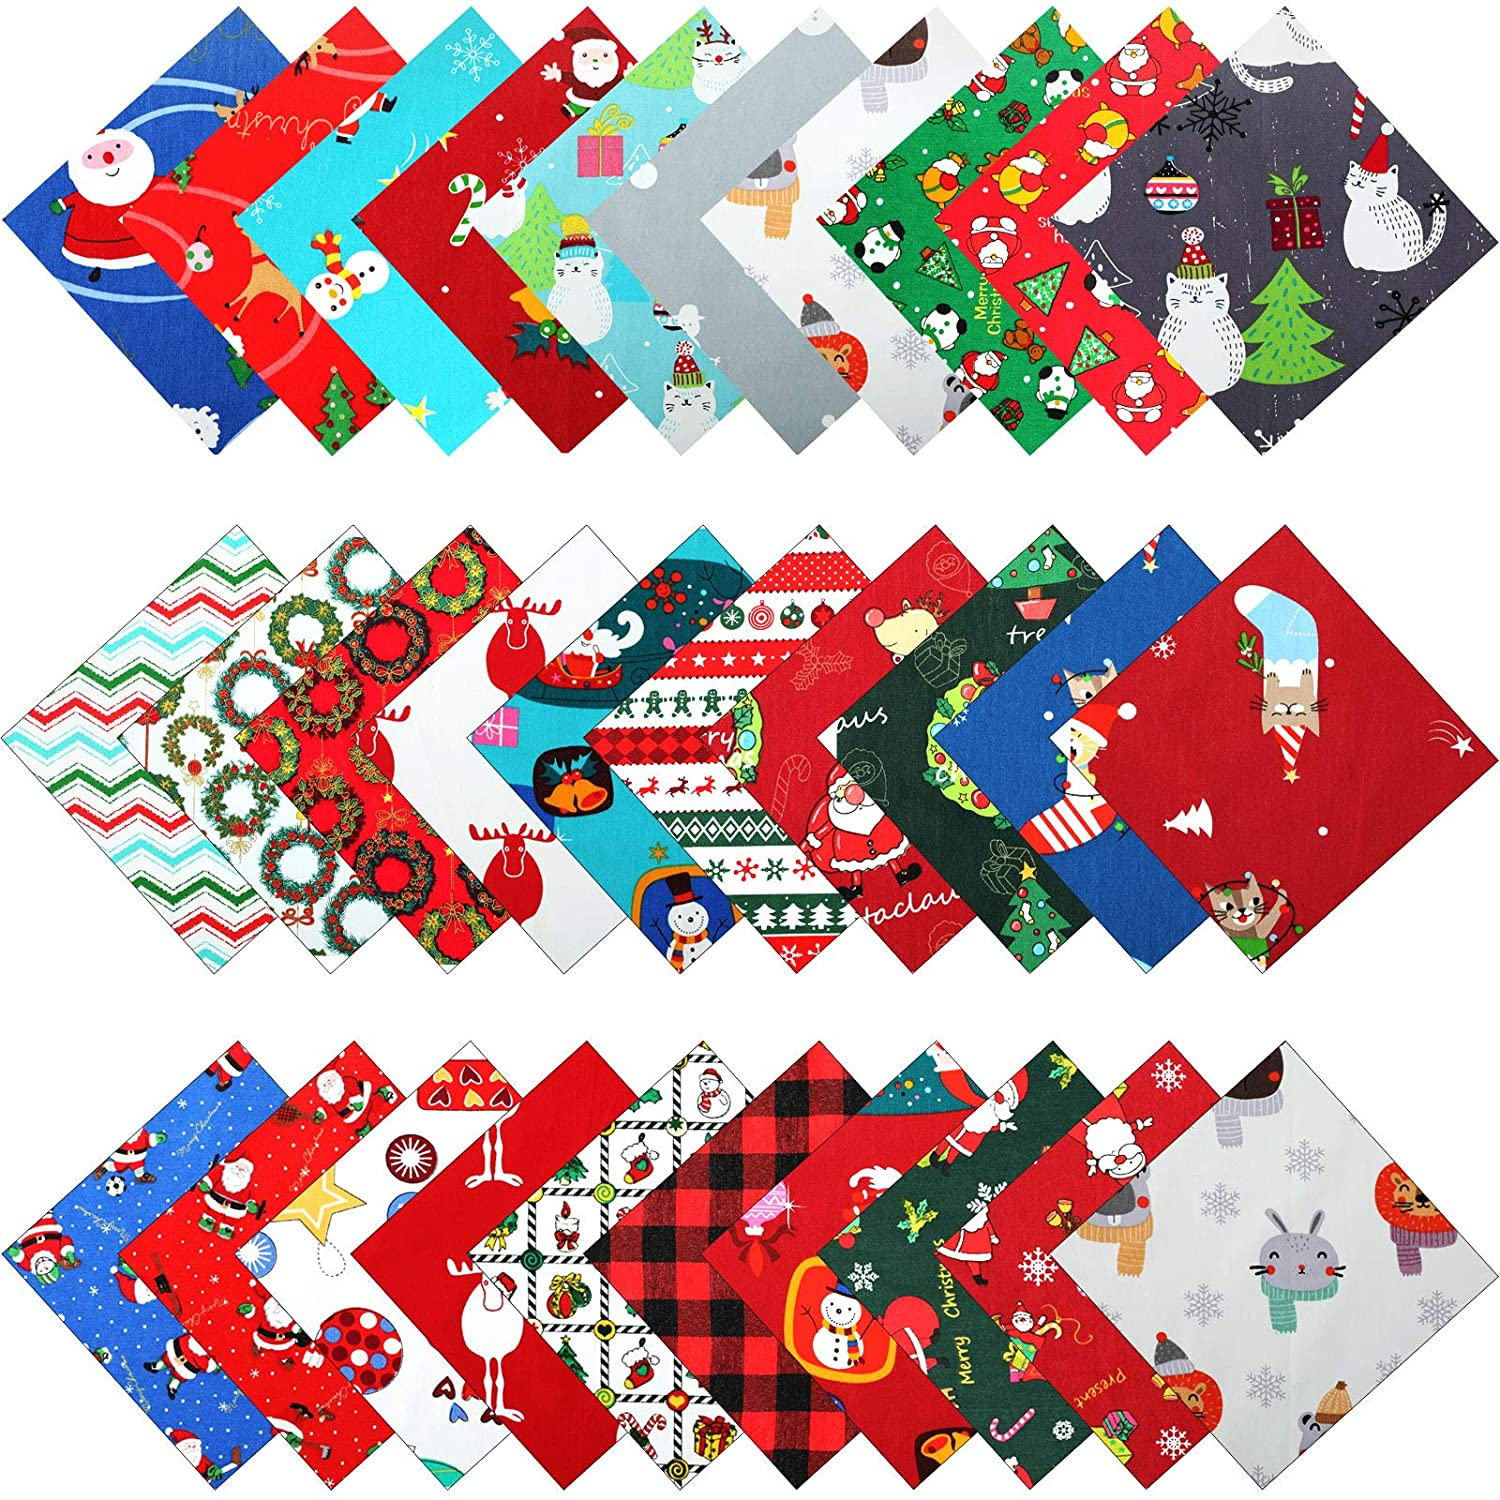 30 Pieces 10 x 10 Inch Christmas Cotton Fabric Bundles Square Sewing Precut Patchwork Printed Fabric Scraps for DIY Christmas Stocking Tree Wreath Doll Dress Apron Quilt Coaster